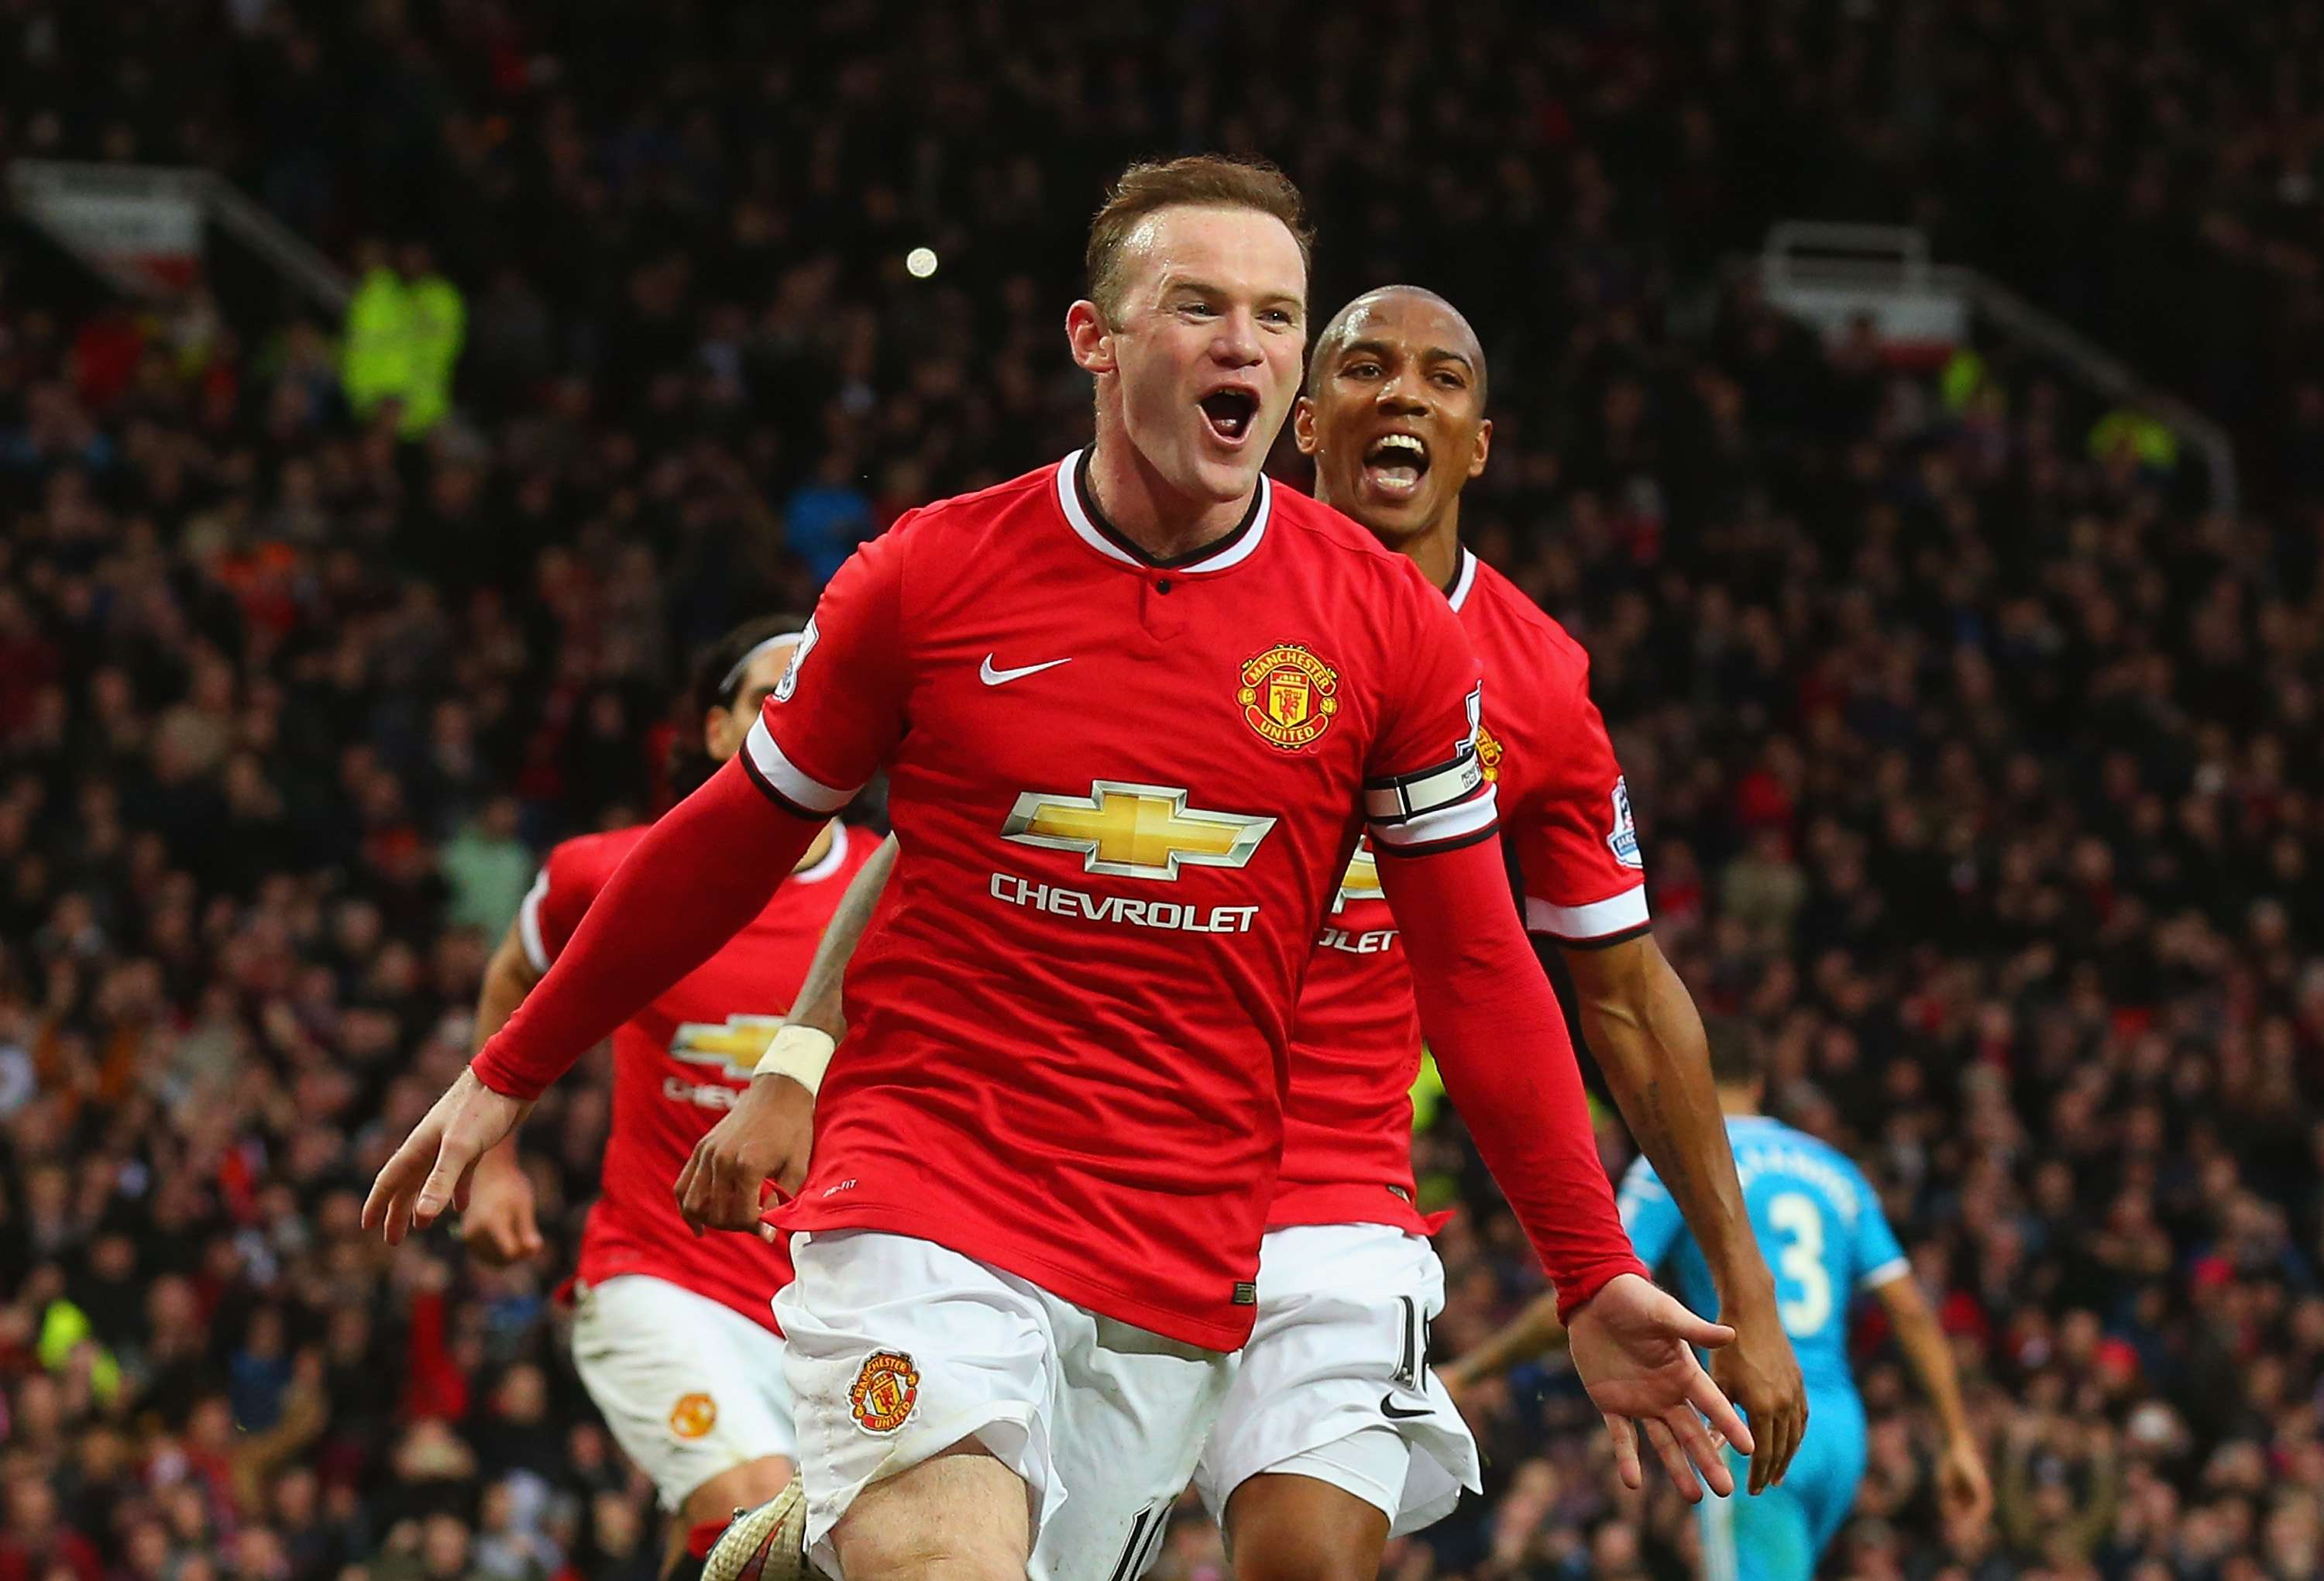 Rooney salvou Manchester United com dois gols Foto: Alex Livesey/Getty Images